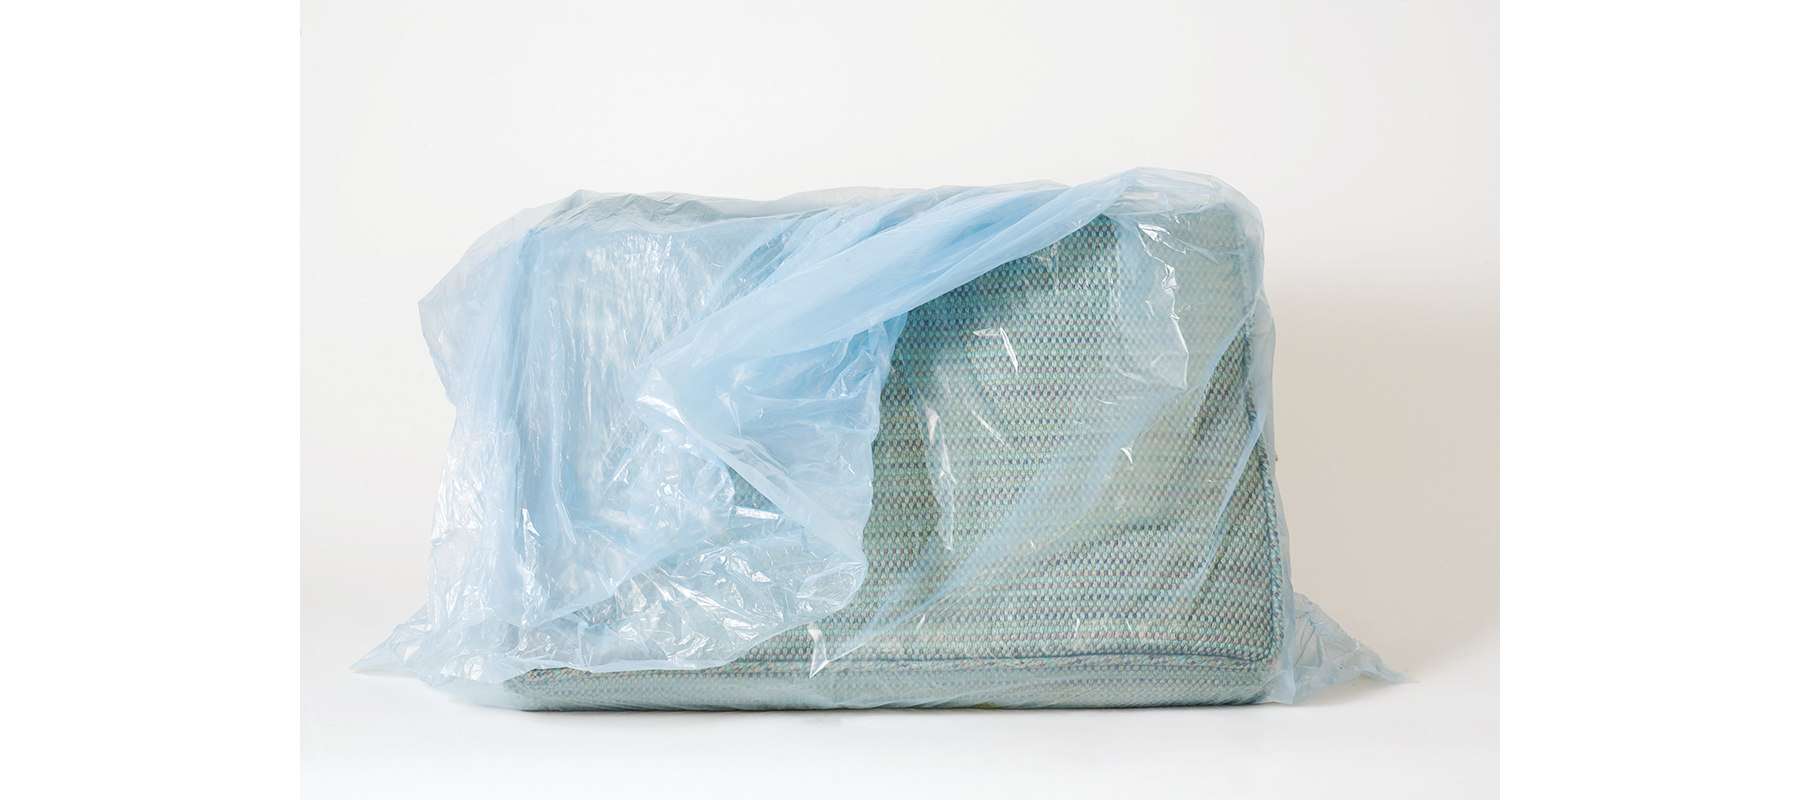 Cushion-in-blue-bag_012710_21.jpg